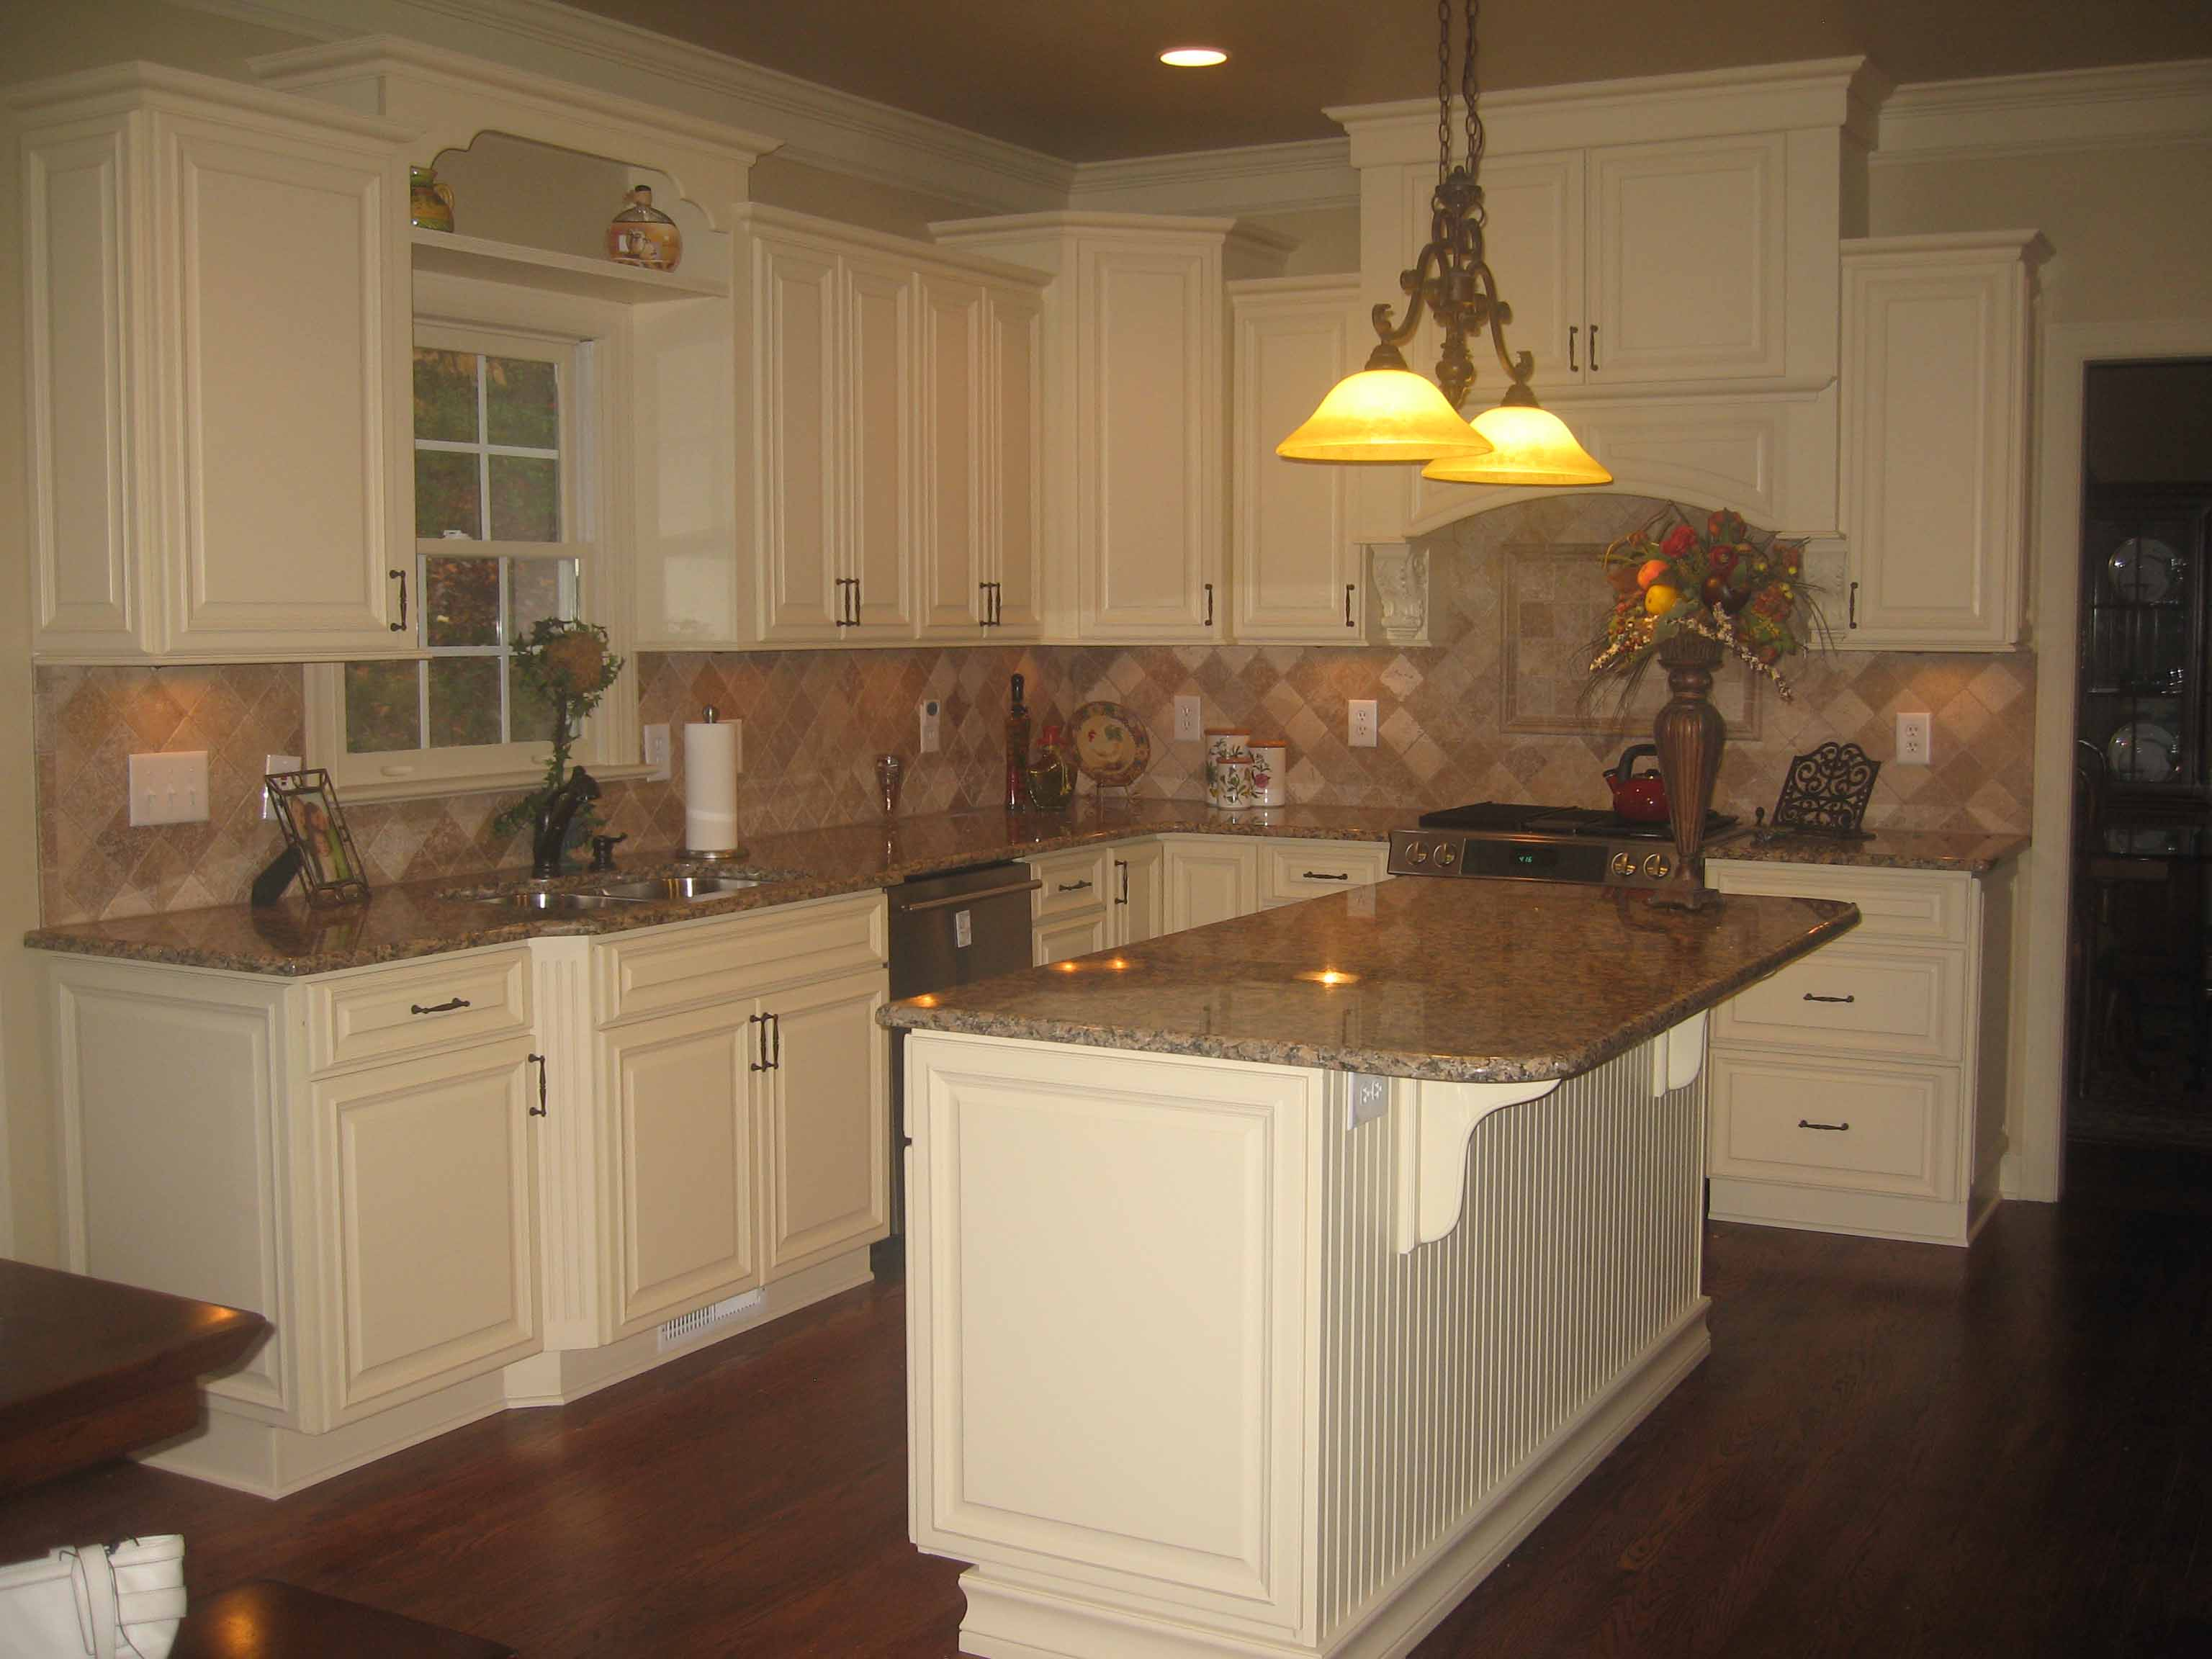 Online Kitchen Cabinet Design Buy Cabinets Online Rta Kitchen Cabinets Kitchen Cabinets